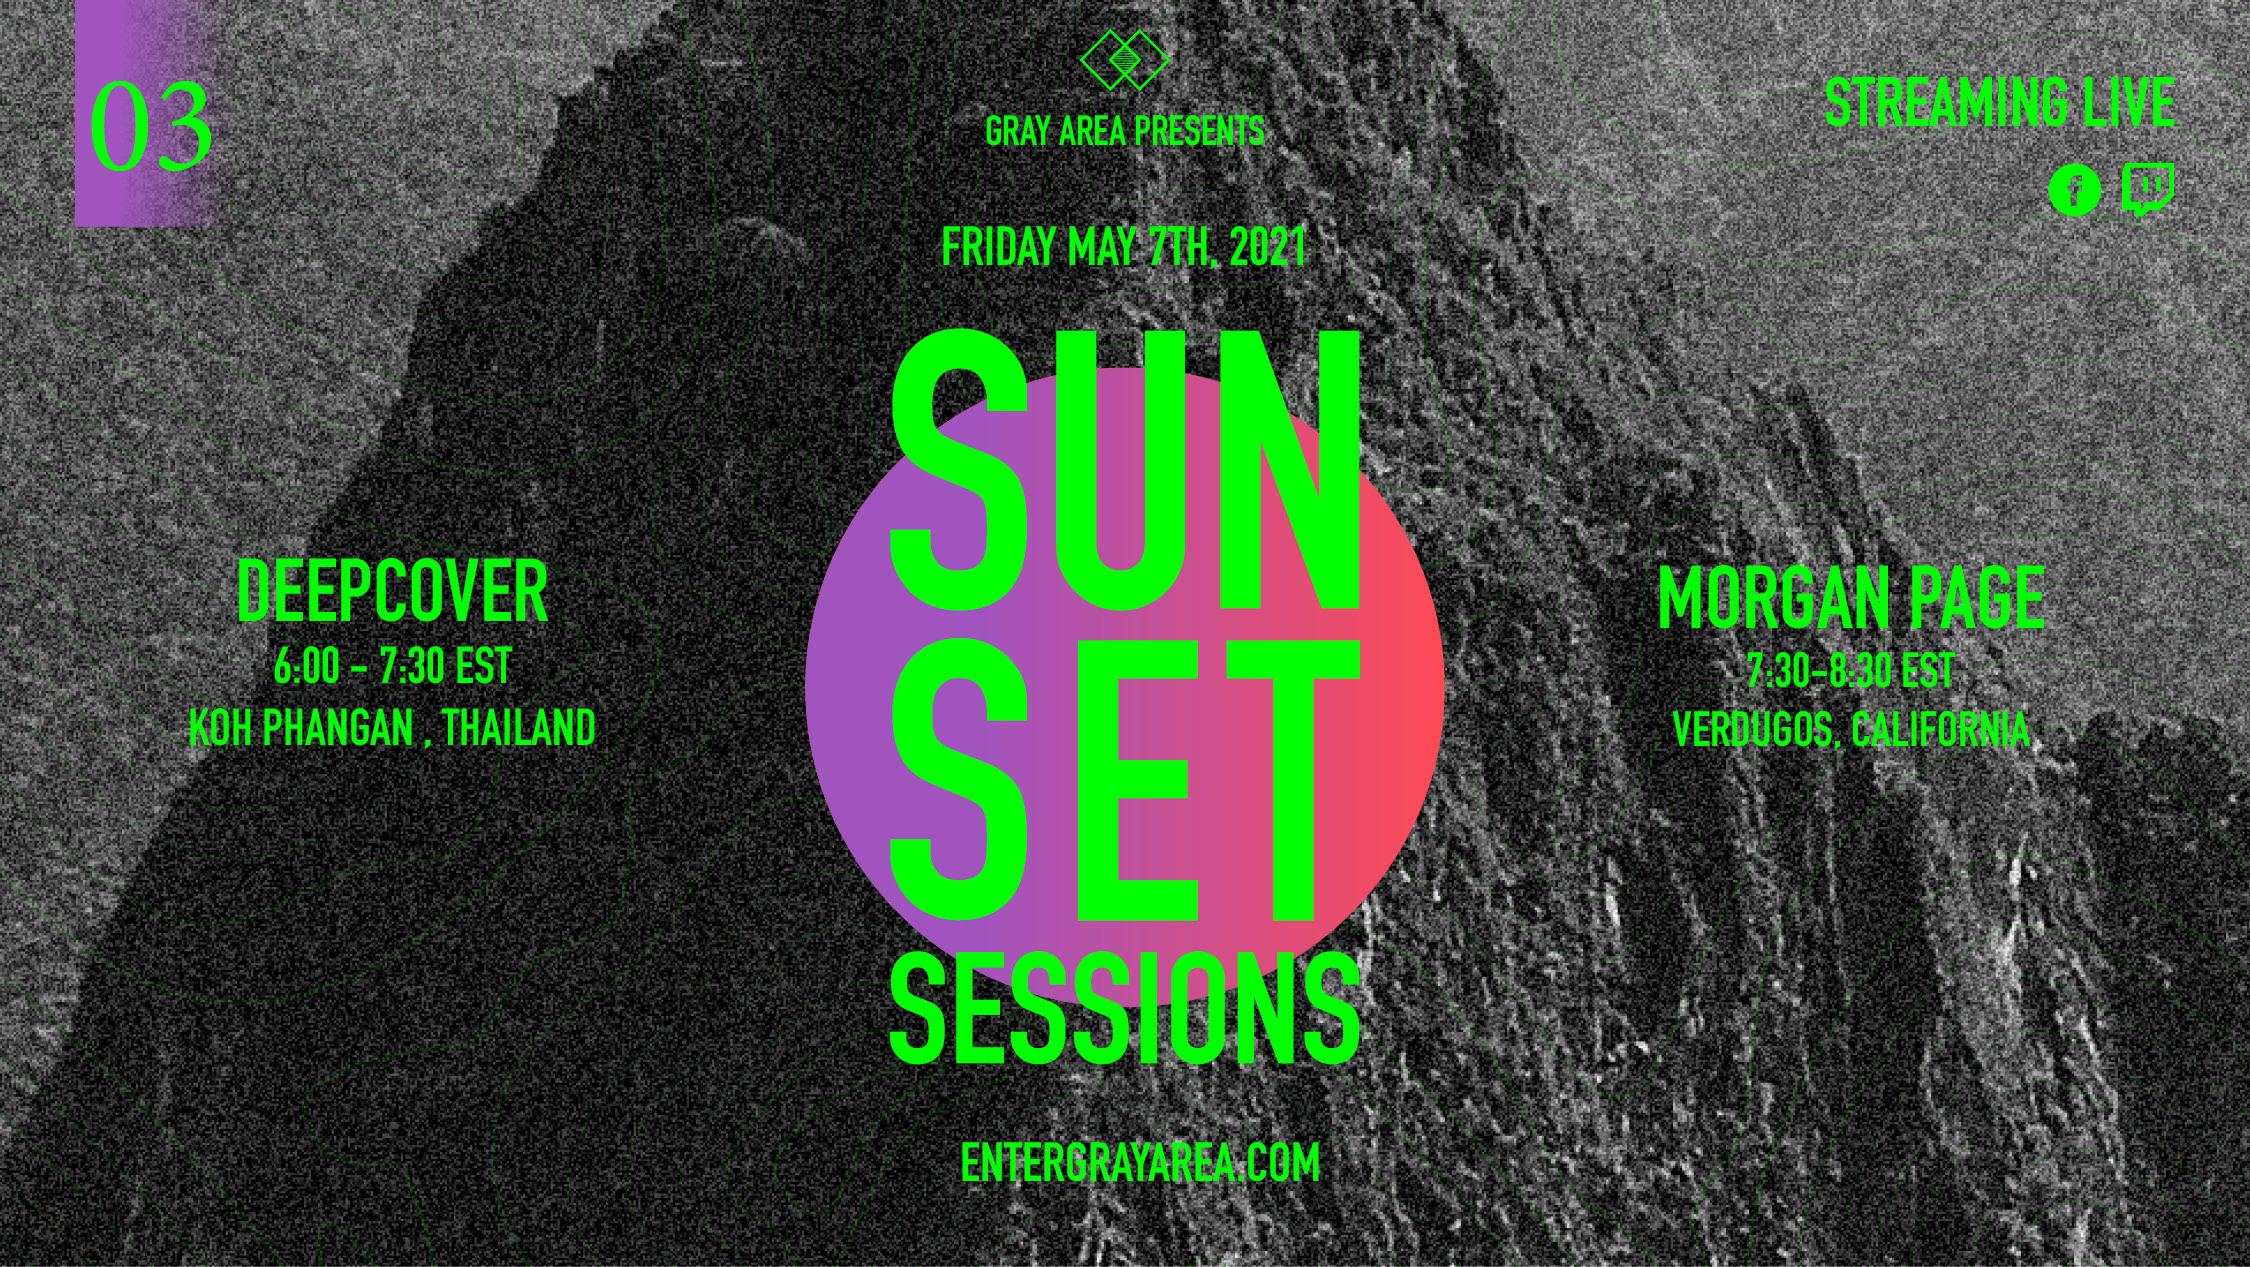 Sunset Sessions 03 w/ Morgan Page & deepcover